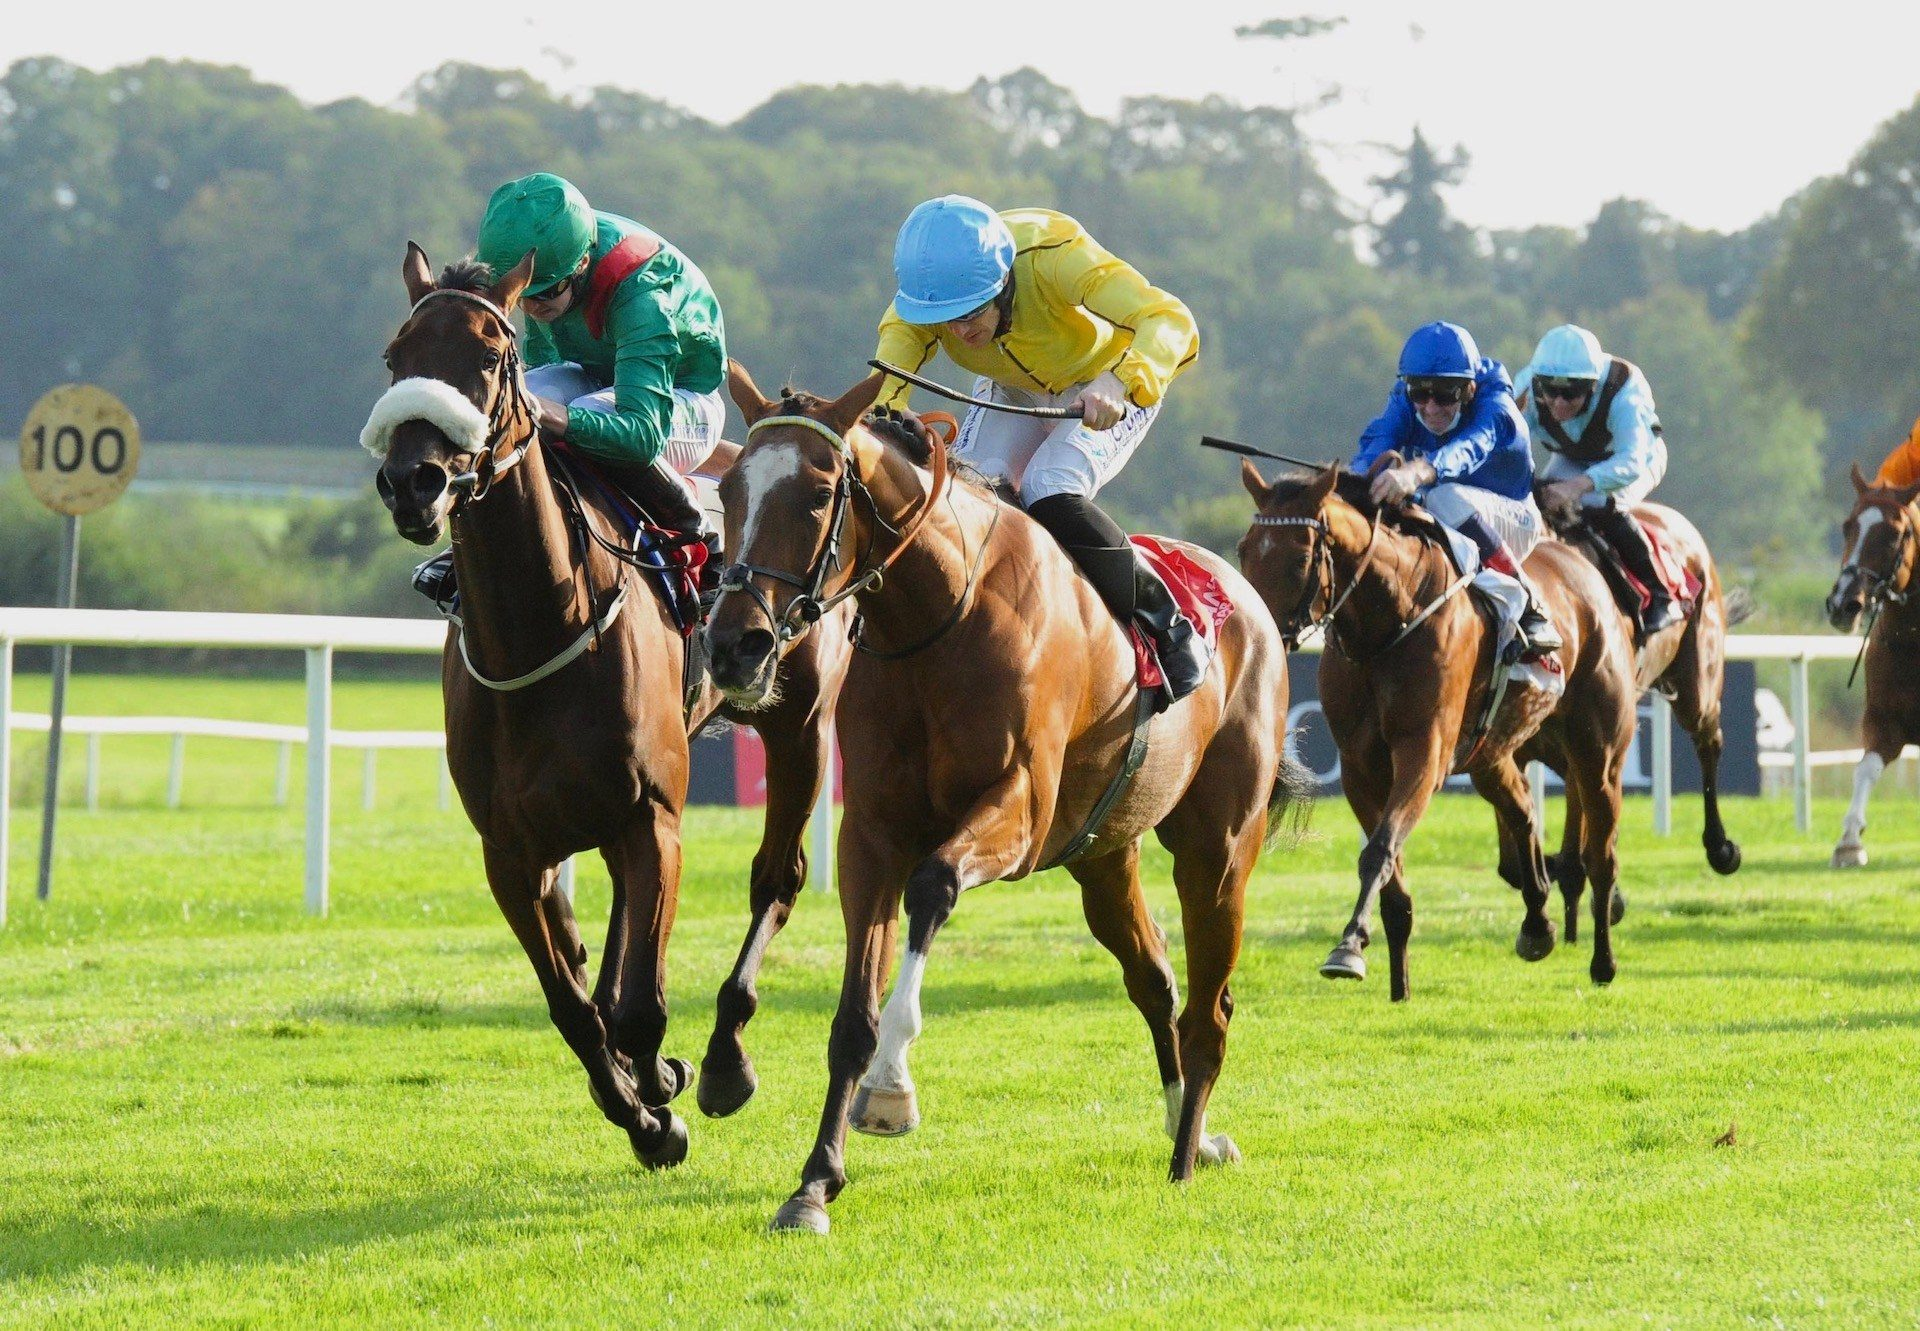 Epona Plays (Australia) Wins The Group 3 Lanwade Stud Stakes At Gowran